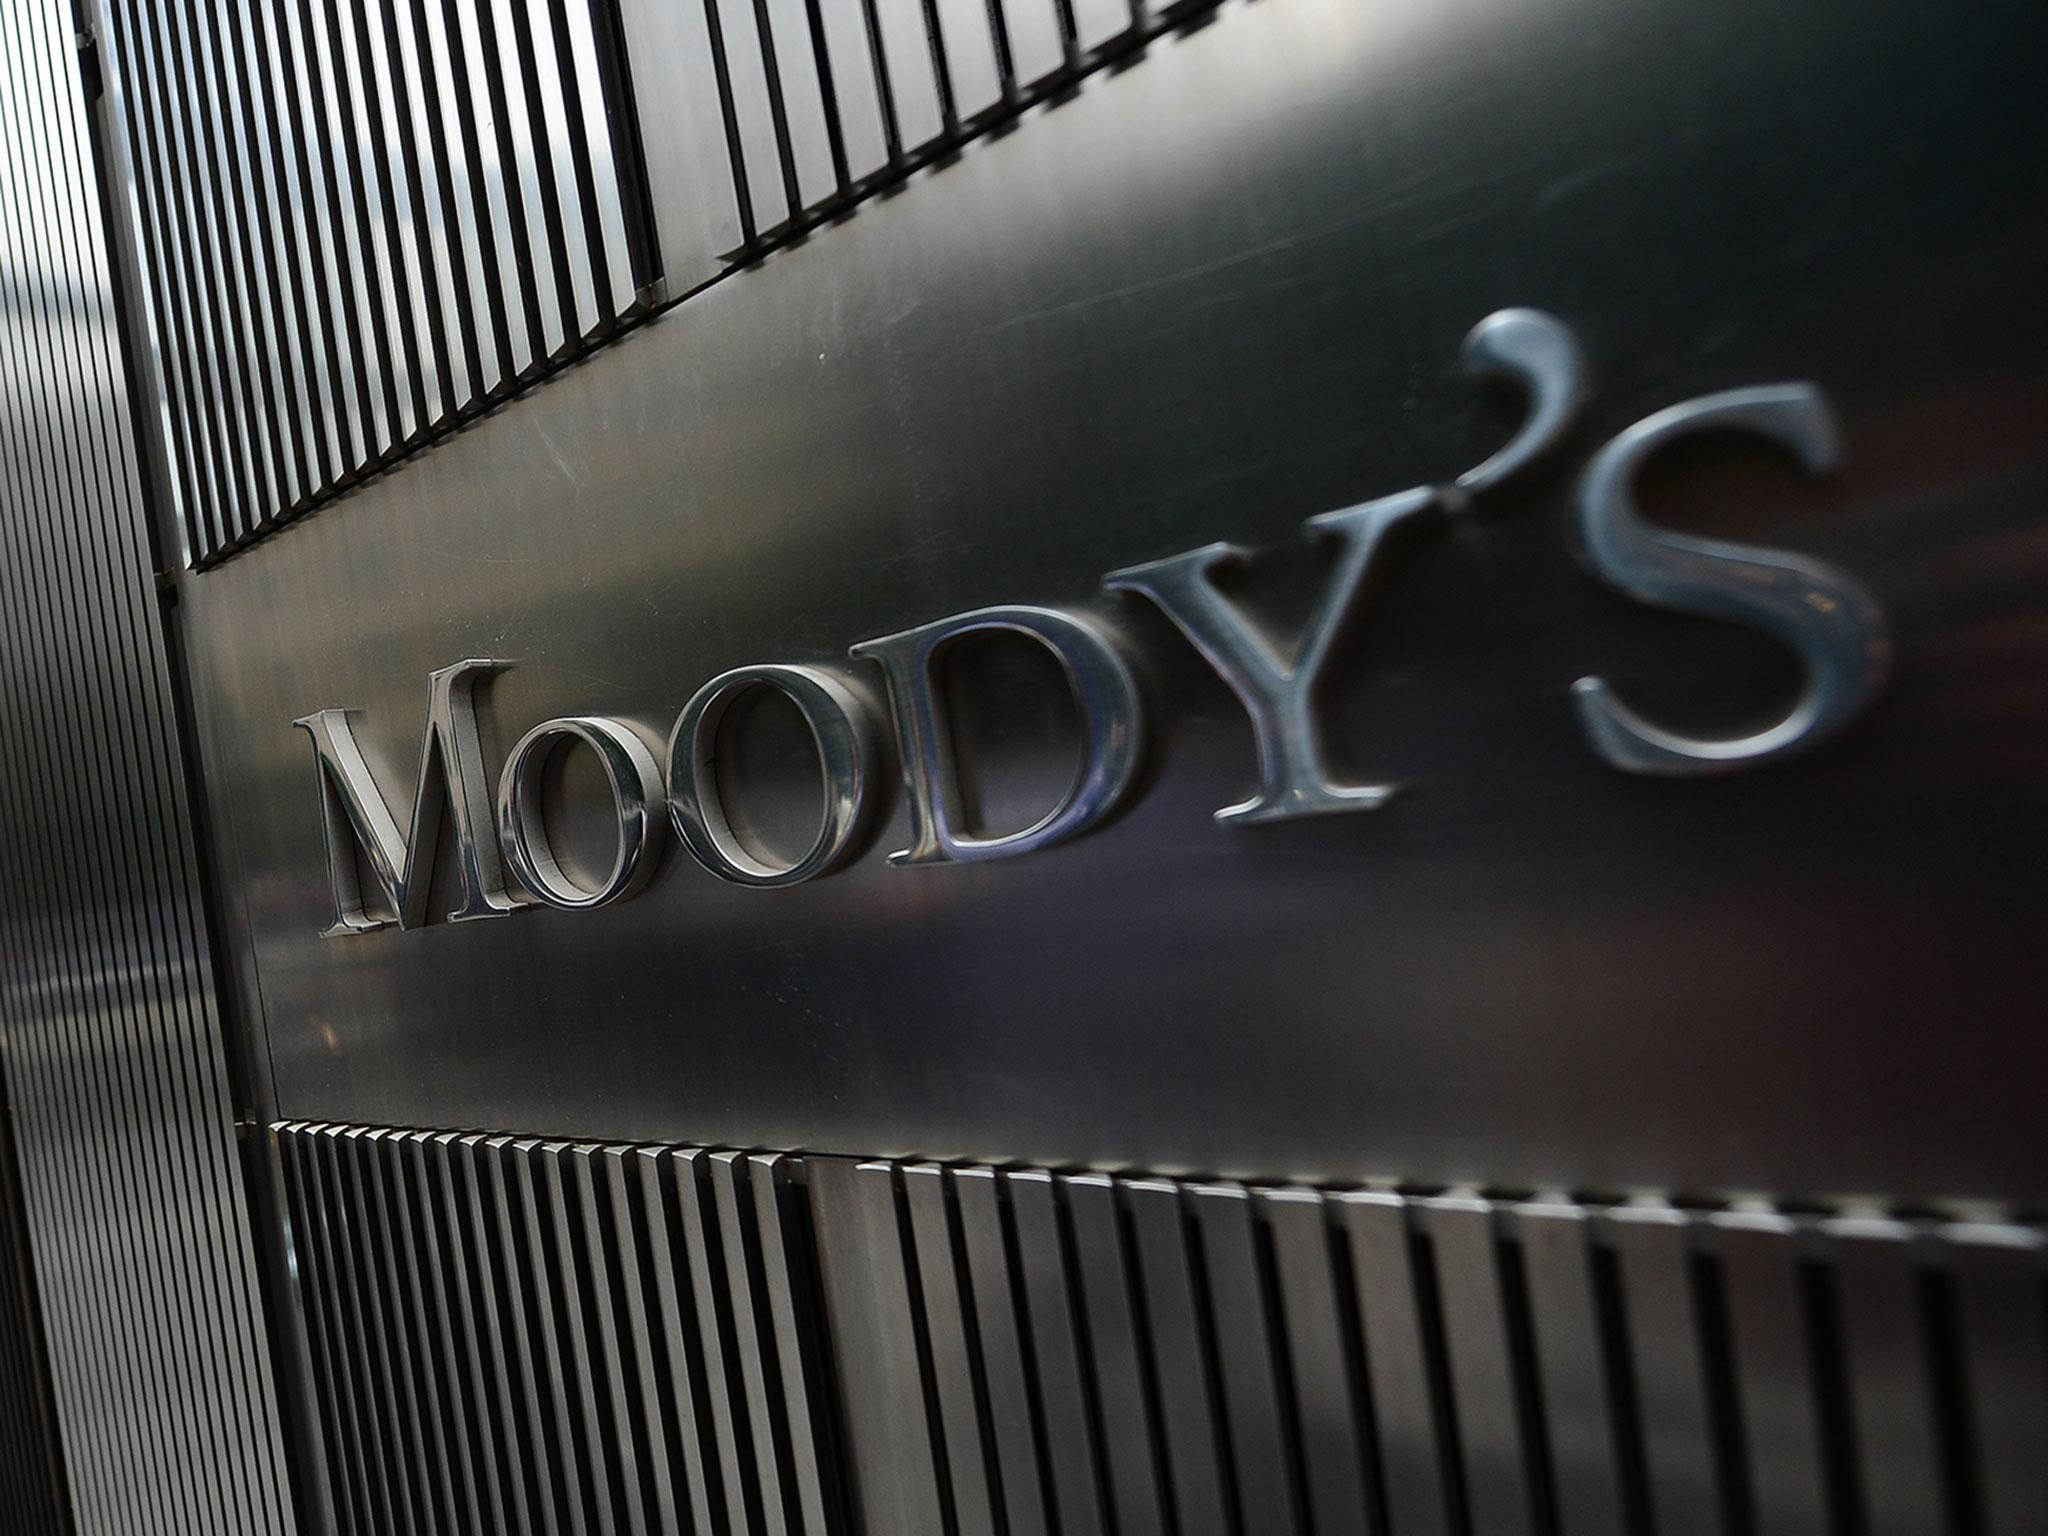 Cyprus: Moody's sees rise in Non-Performing Loans